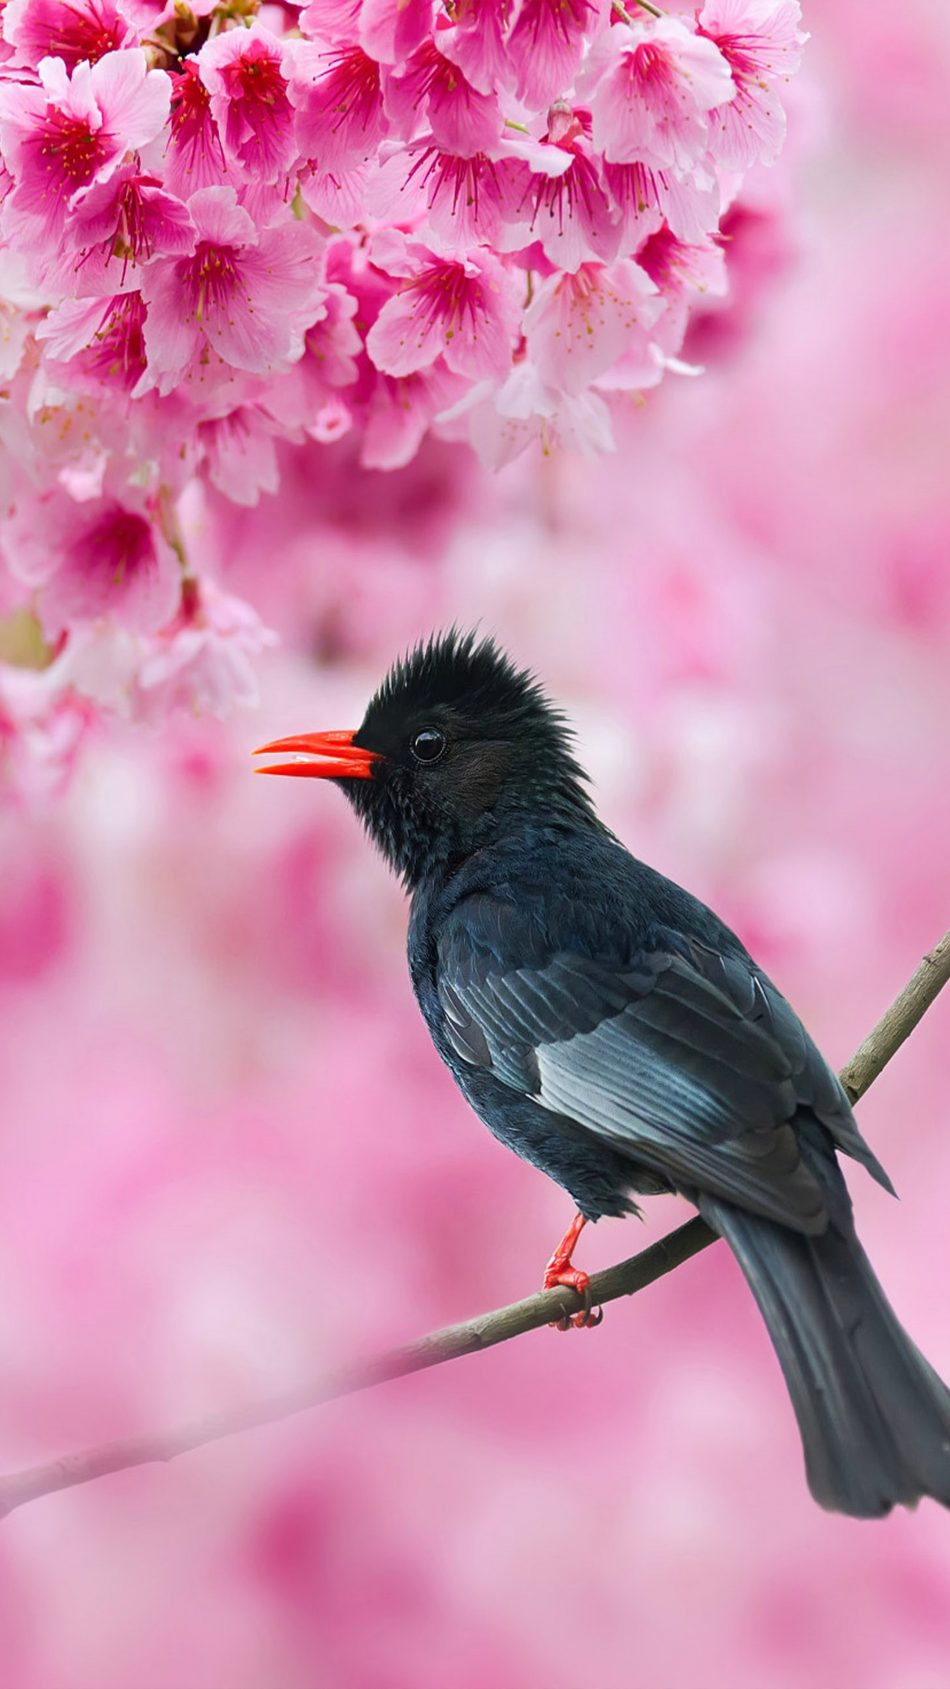 Black Bulbul Sakura Tree Pink Flowers 4K Ultra HD Mobile Wallpaper